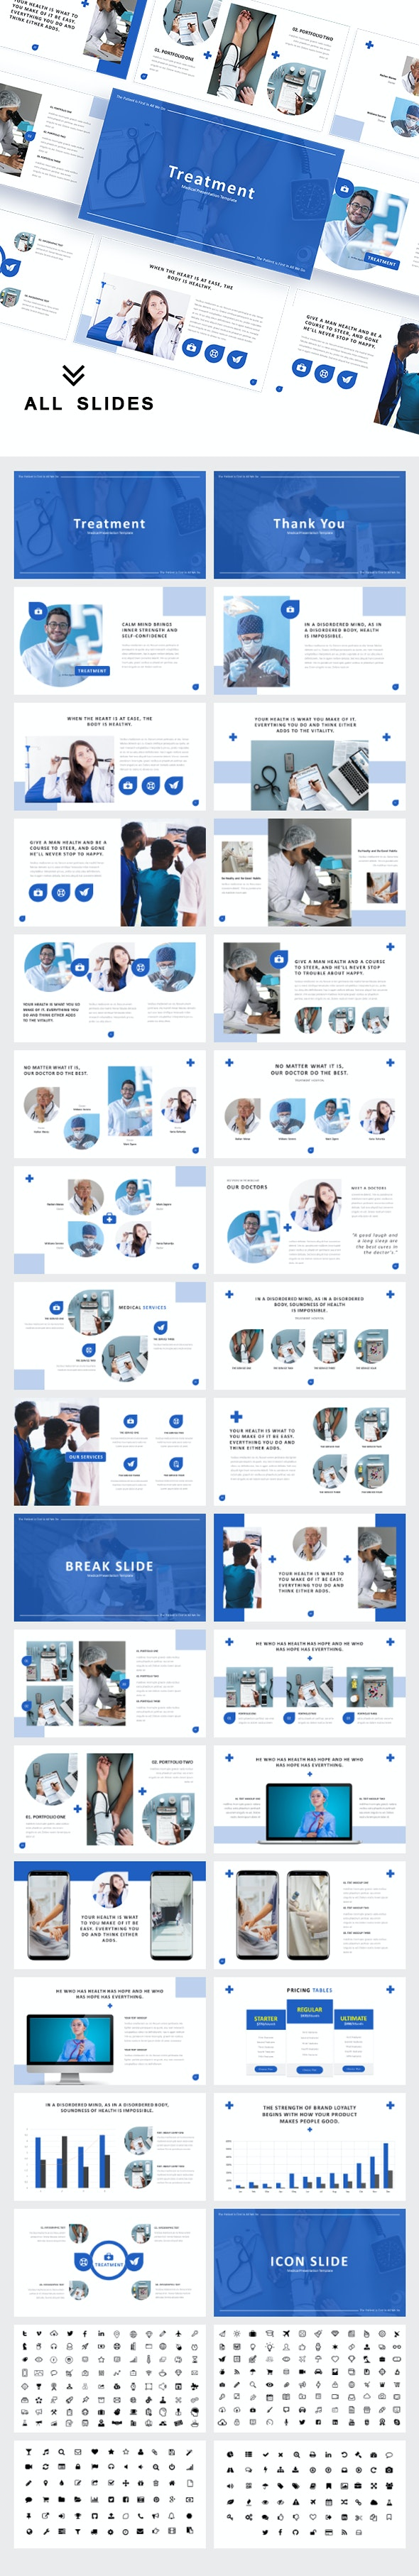 Treatment Medical Powerpoint Template - Business PowerPoint Templates